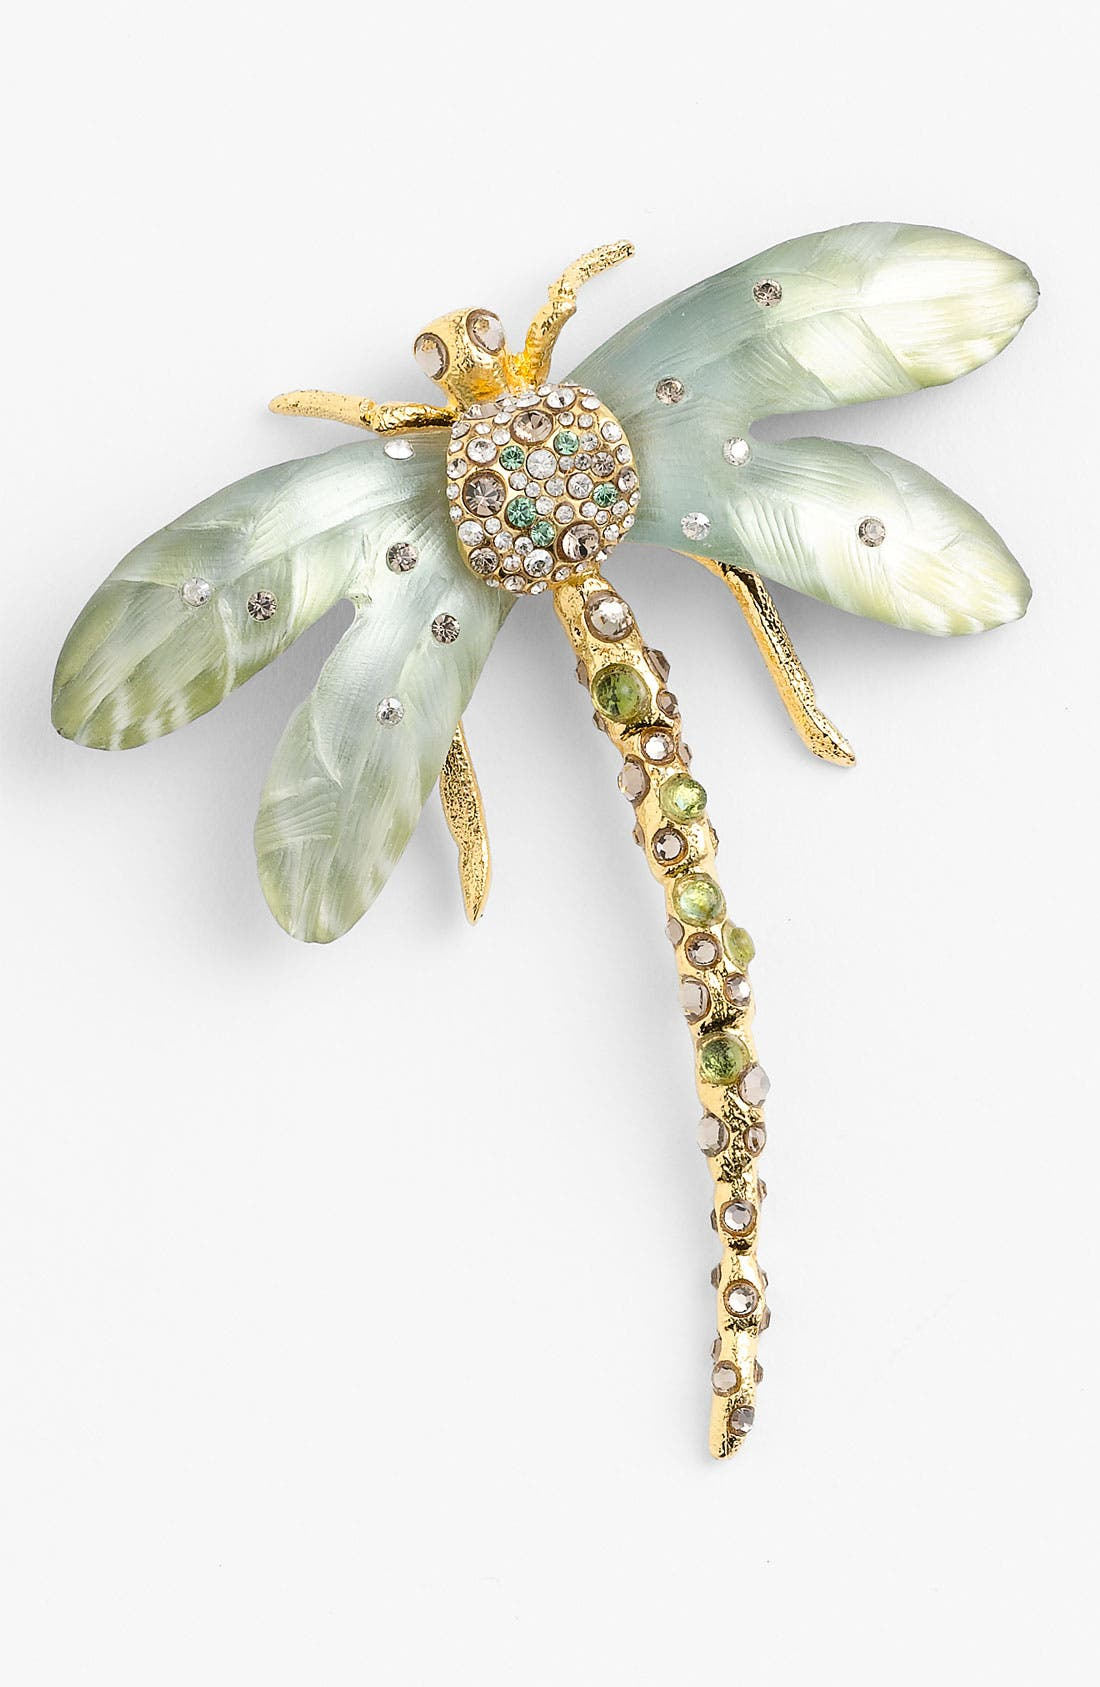 Alternate Image 1 Selected - Alexis Bittar 'Allegory' Dragonfly Statement Pin